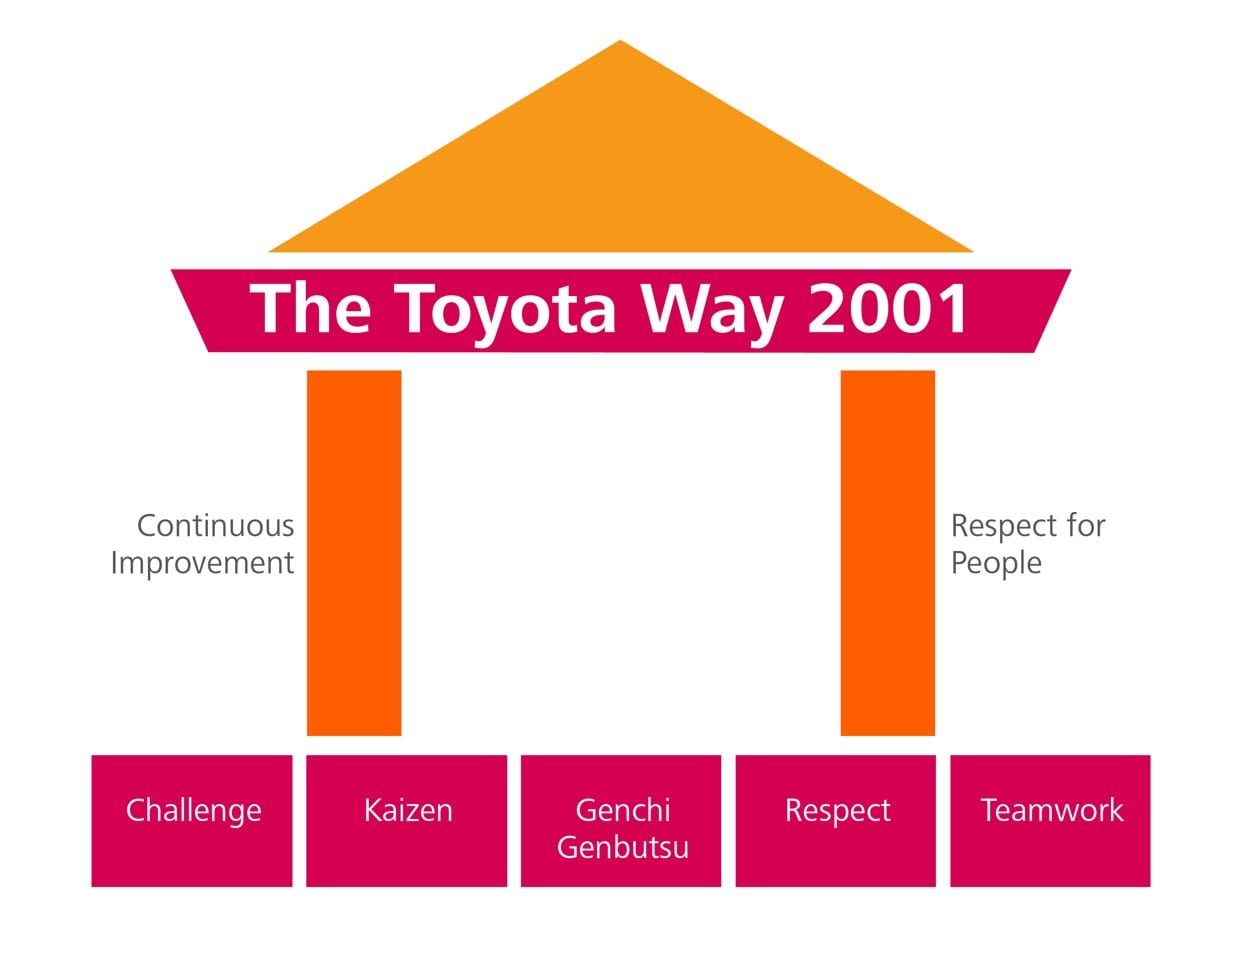 lean management lessons from procter gamble and toyota planet lean. Black Bedroom Furniture Sets. Home Design Ideas